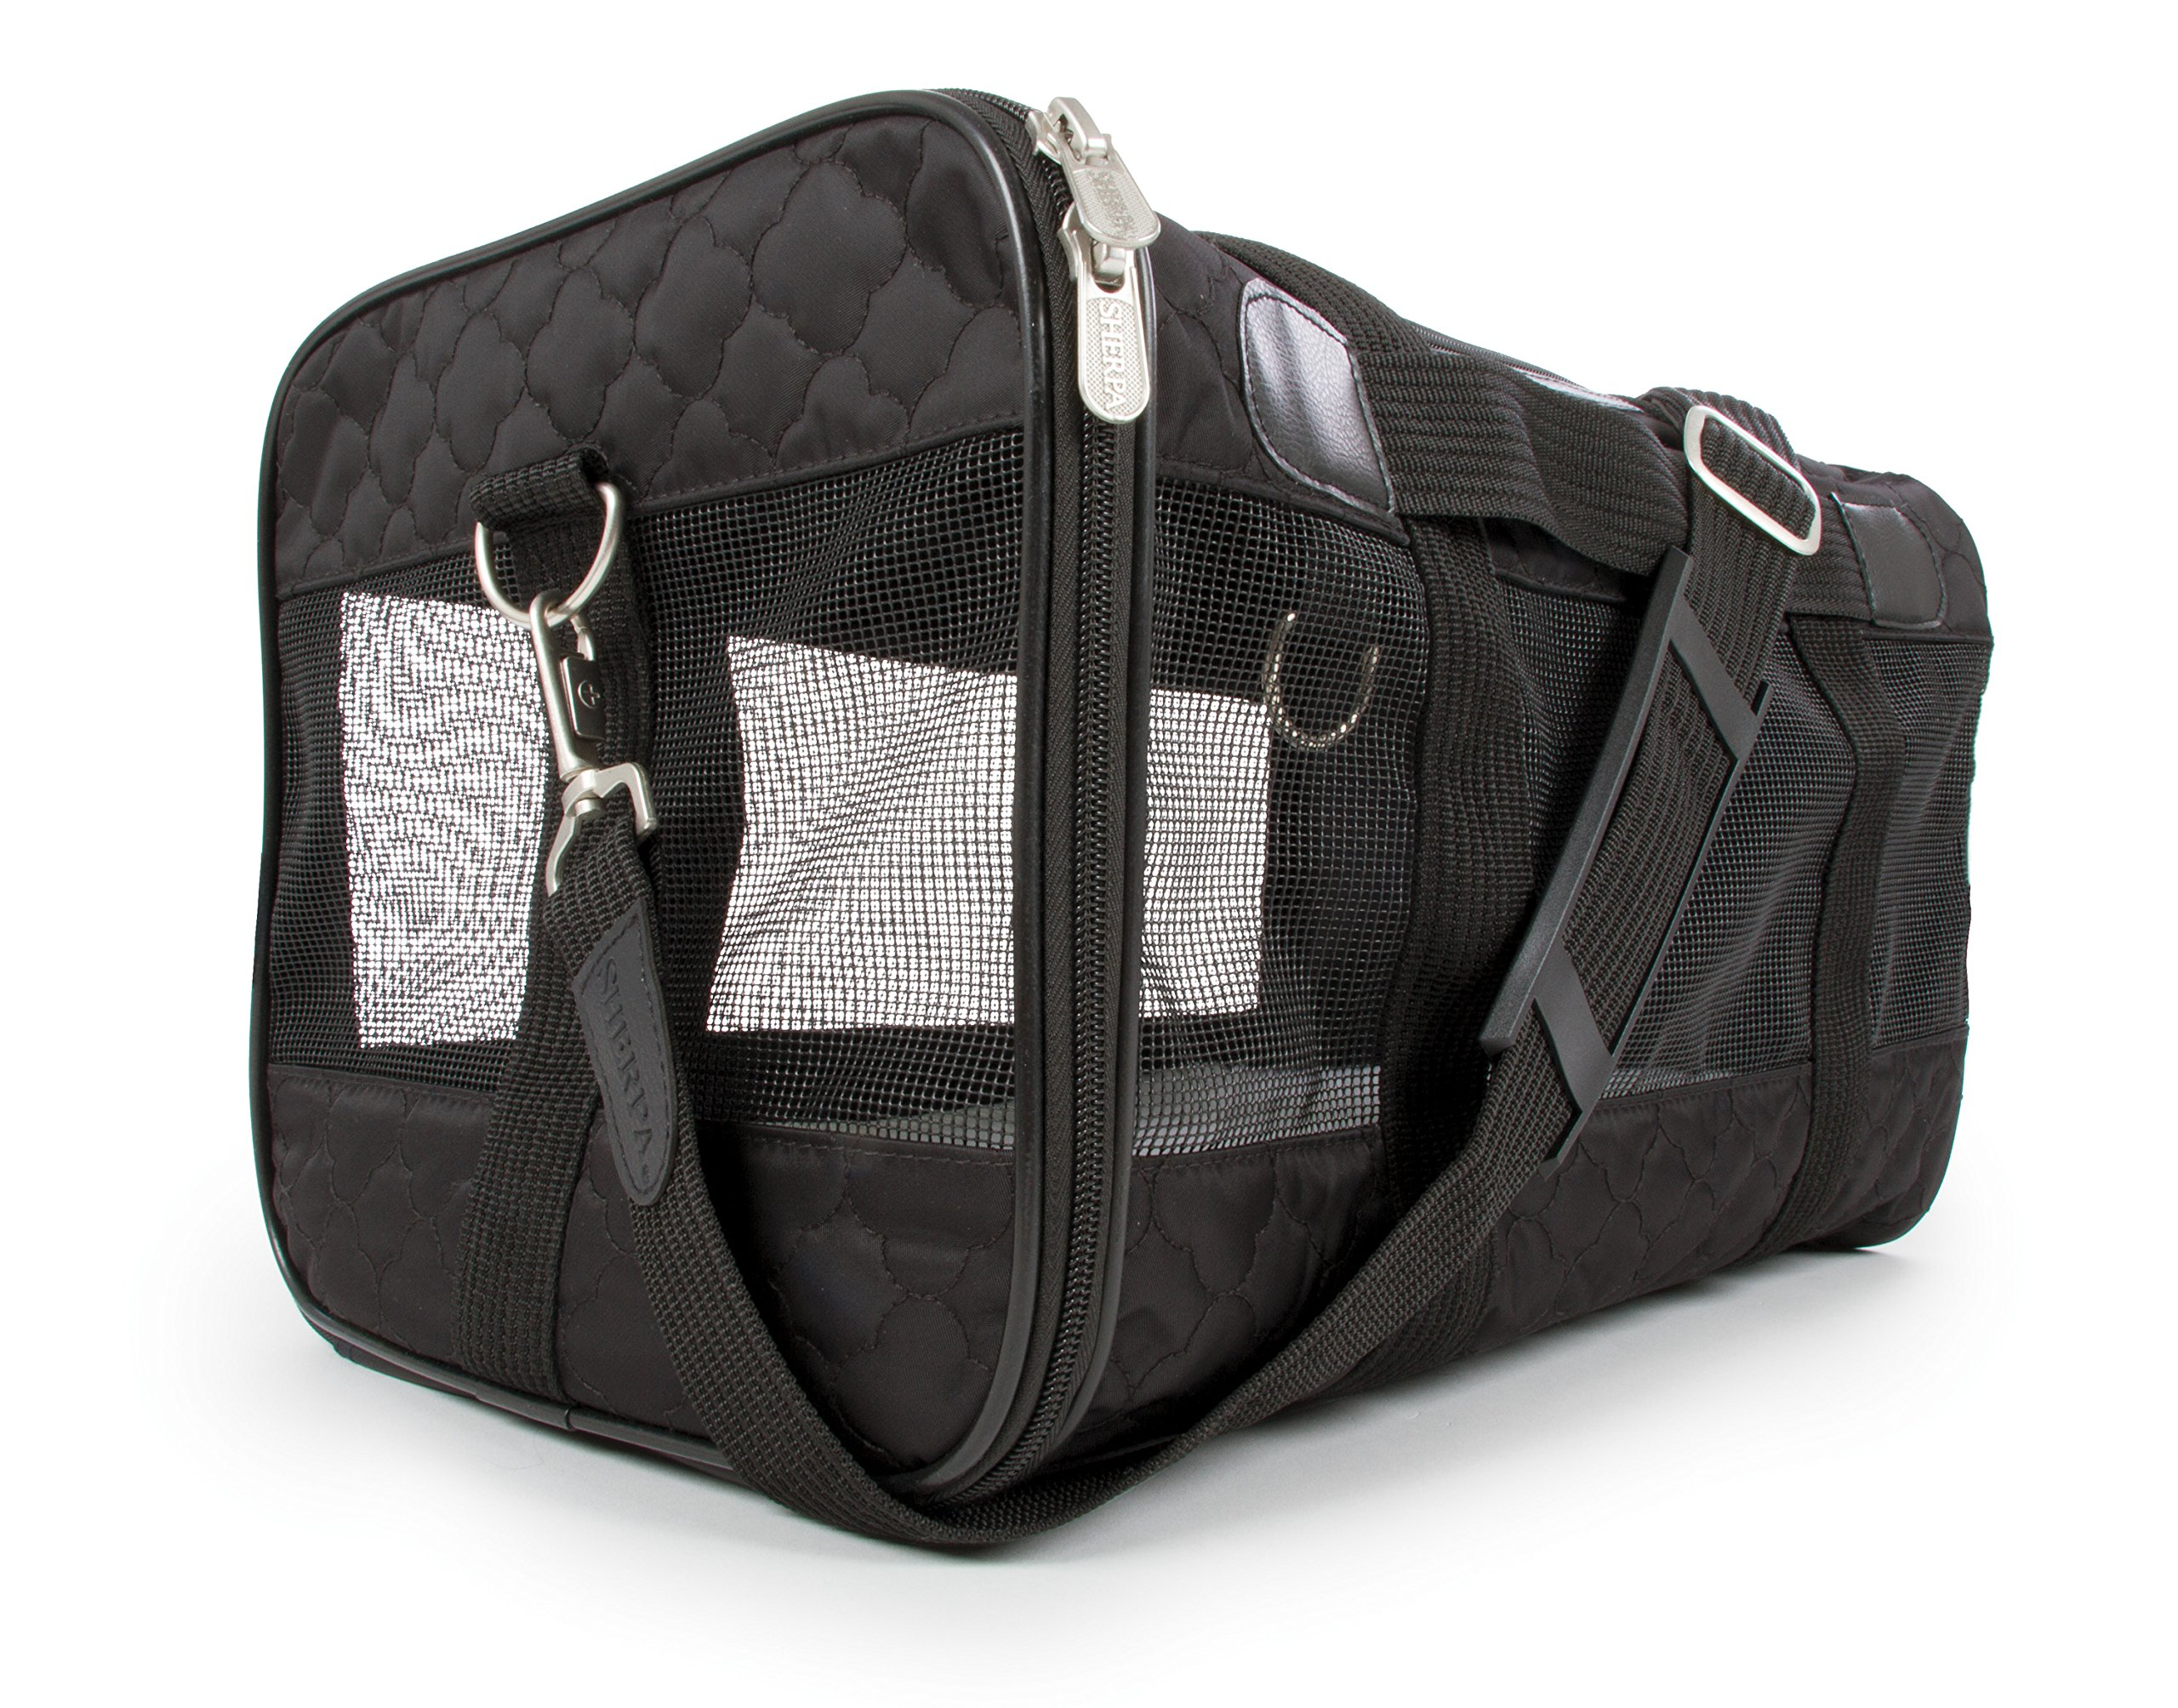 Sherpa Travel Original Deluxe Airline Approved Pet Carrier, Black Lattice Stitching, Small (Frustration Free Packaging) by Sherpa